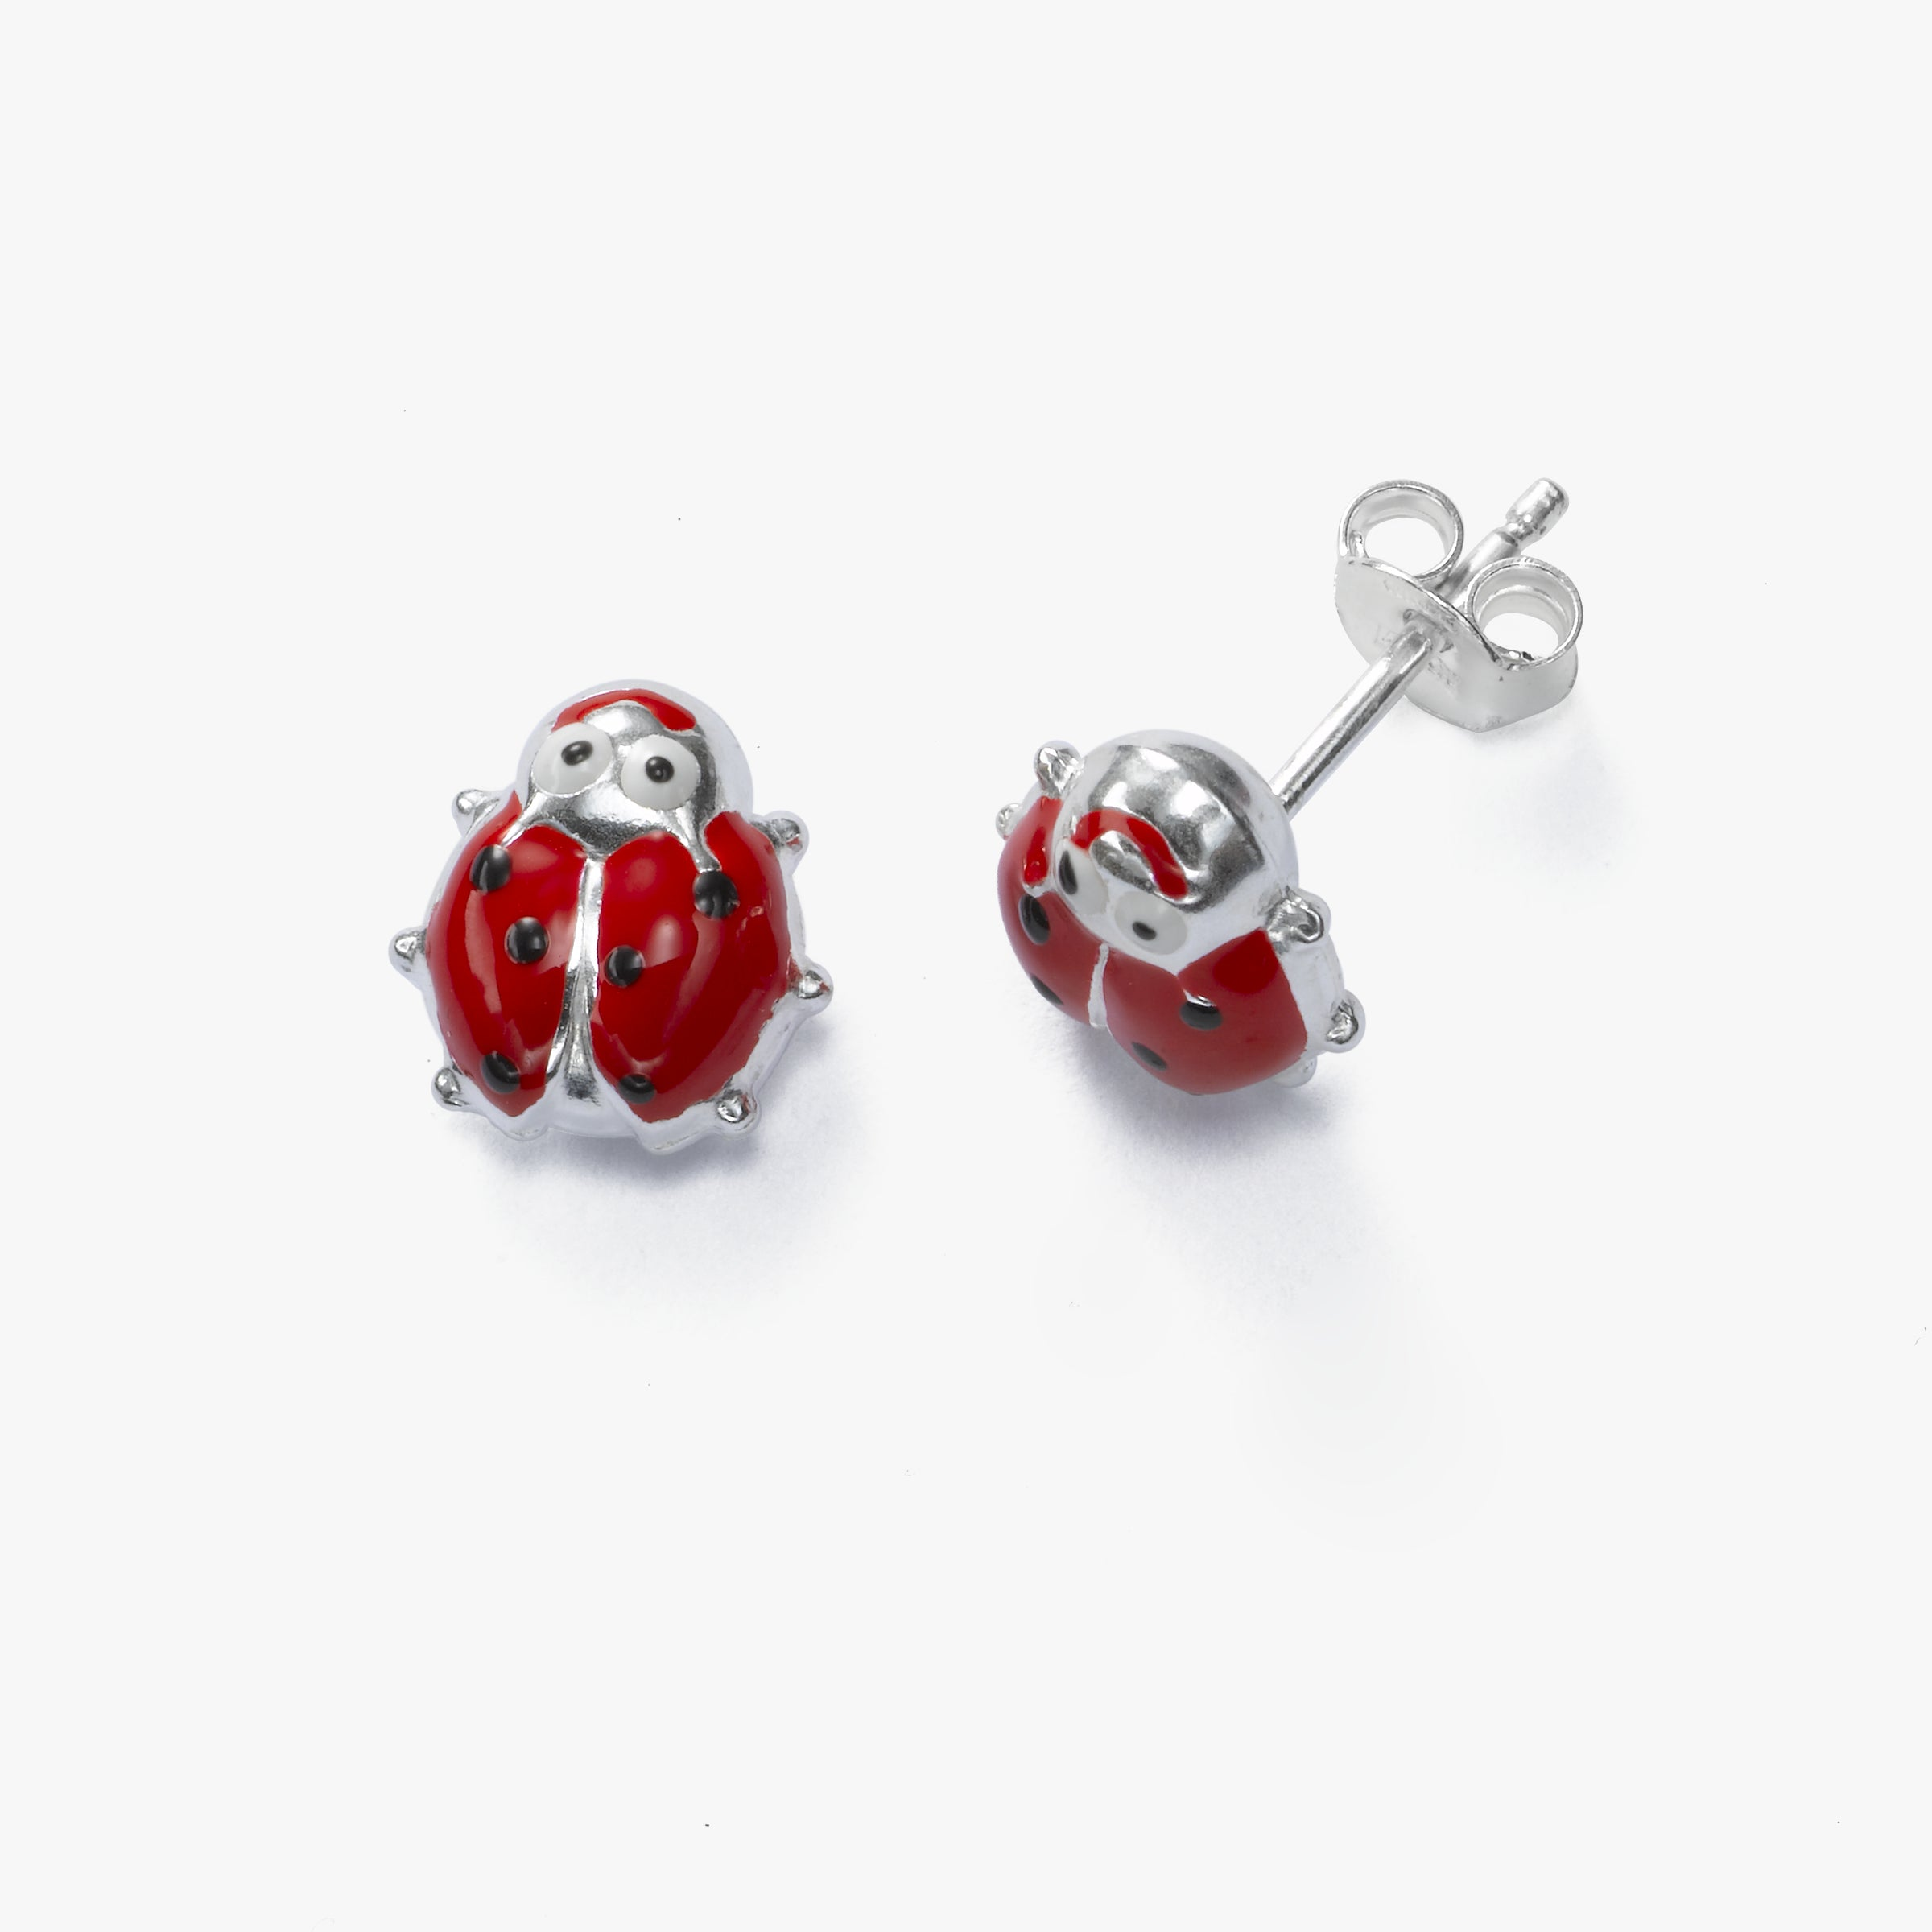 Red Ladybug Earring, Sterling Silver